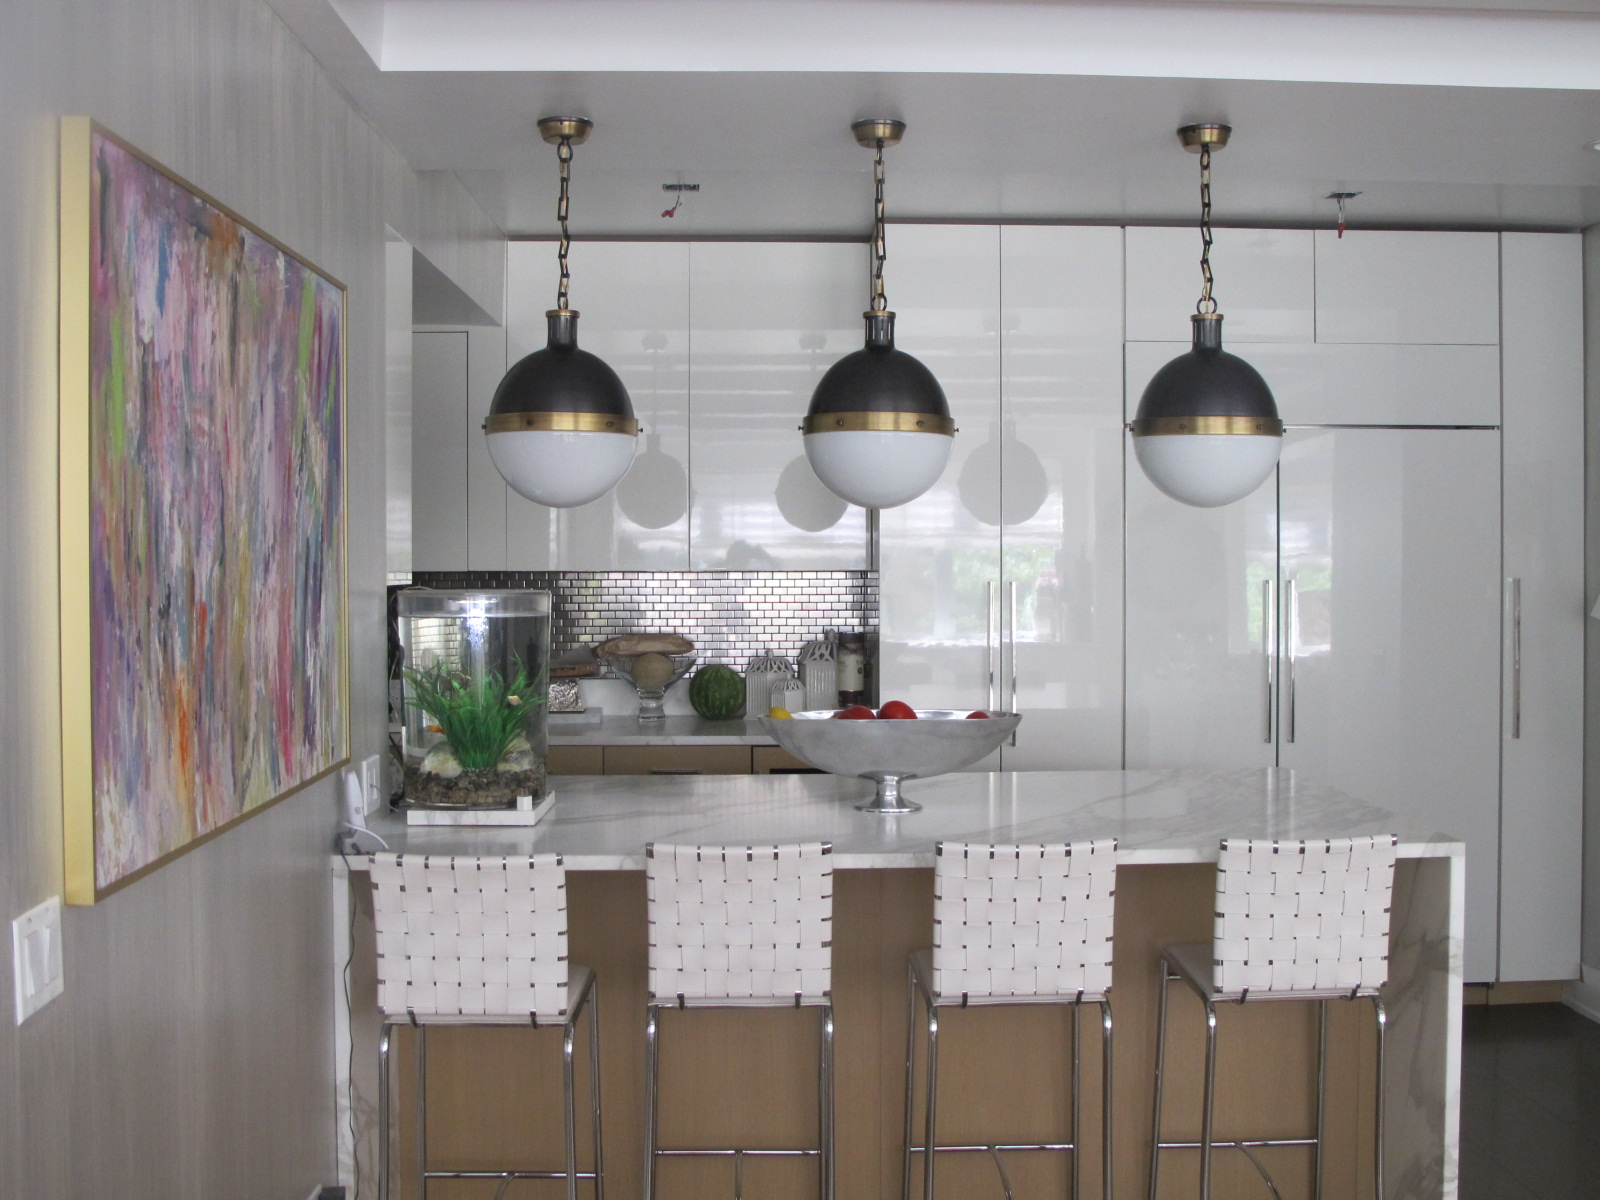 Kitchen Pendant Reveal NICOLE COHEN - Small pendant light fixtures for kitchen